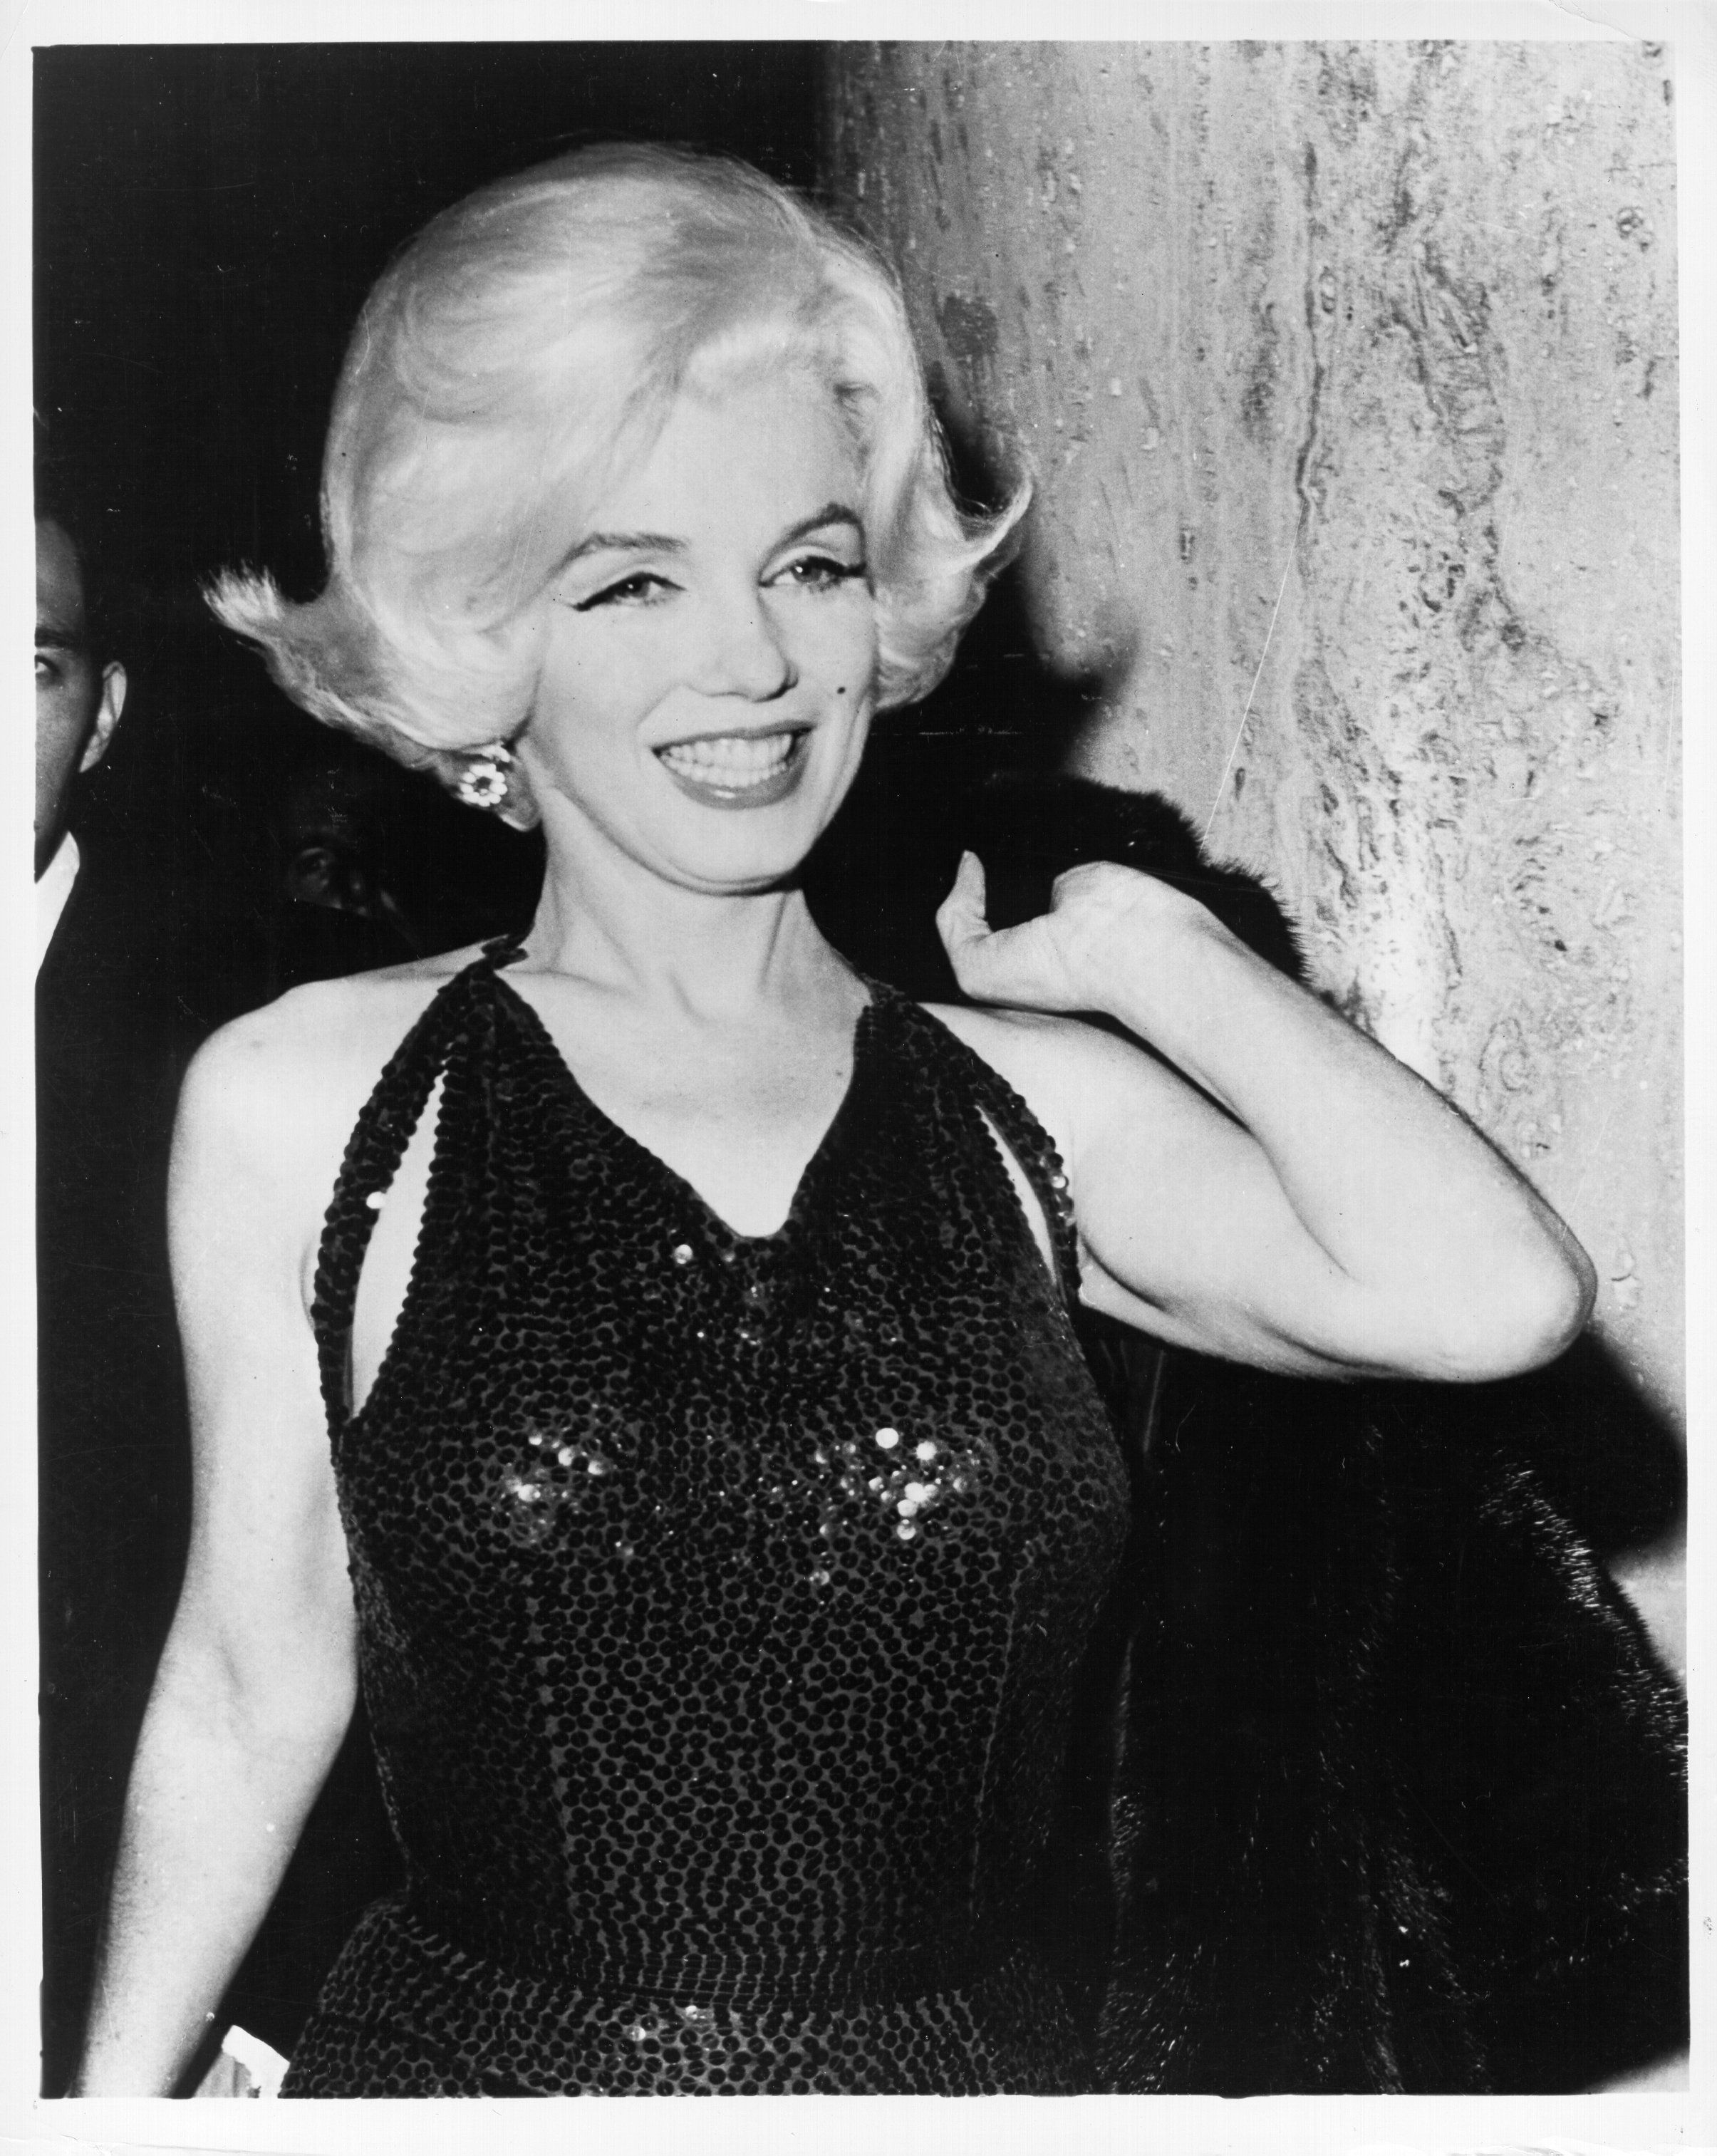 LOS ANGELES - MARCH 5:  Actress Marilyn Monroe poses for a portrait at the Golden Globe Awards where she won the 'Henrietta' award at the Beverly Hilton Hotel on March 5, 1962 in Los Angeles, California. (Photo by Michael Ochs Archives/Getty Images)